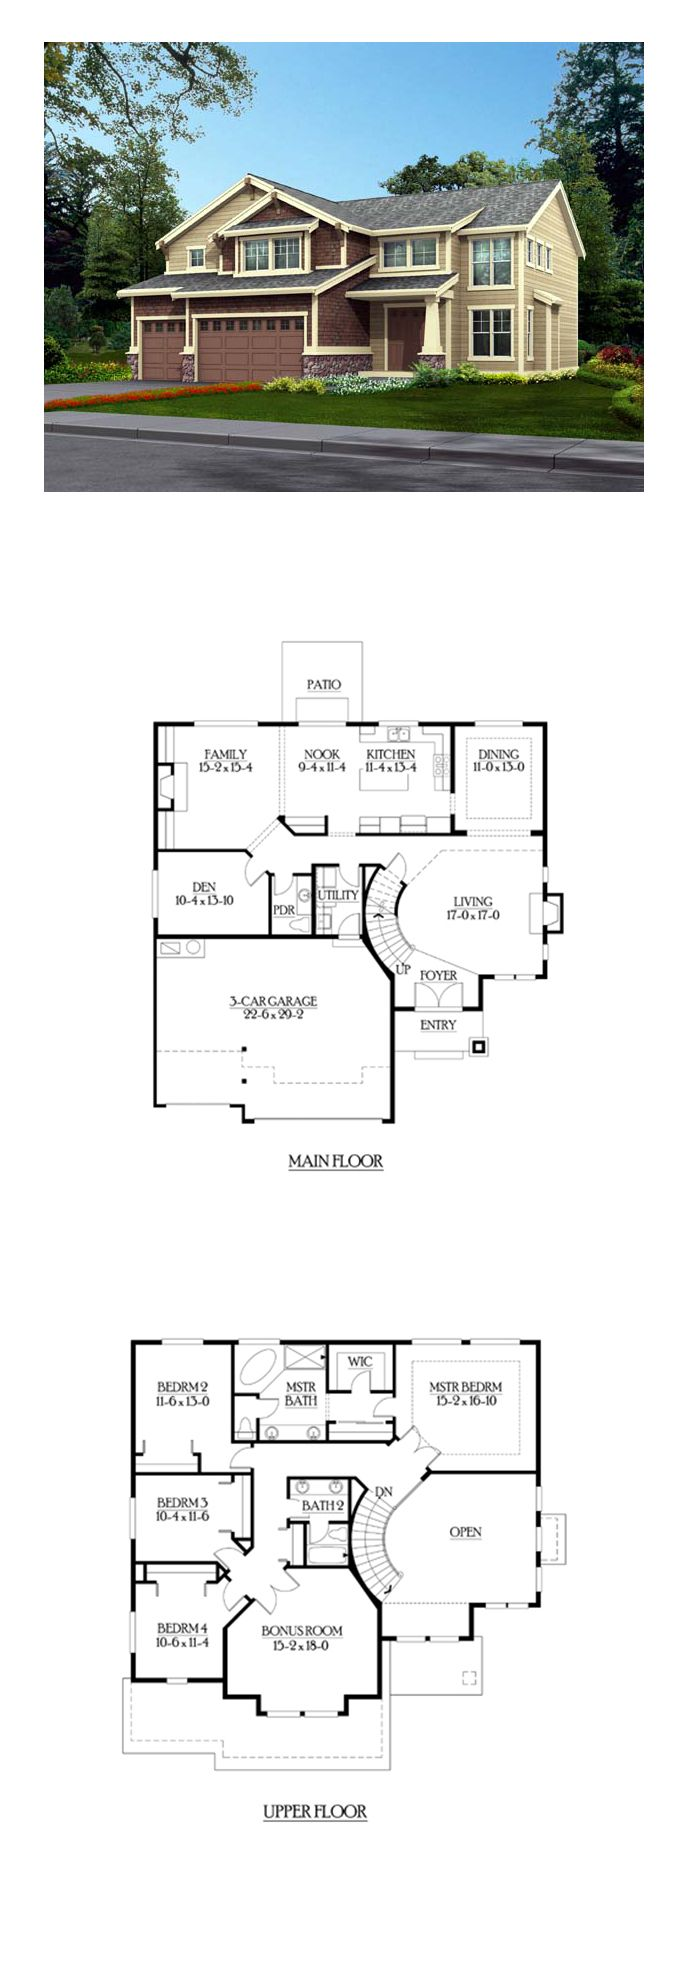 Shingle Style COOL House Plan ID chp 39772